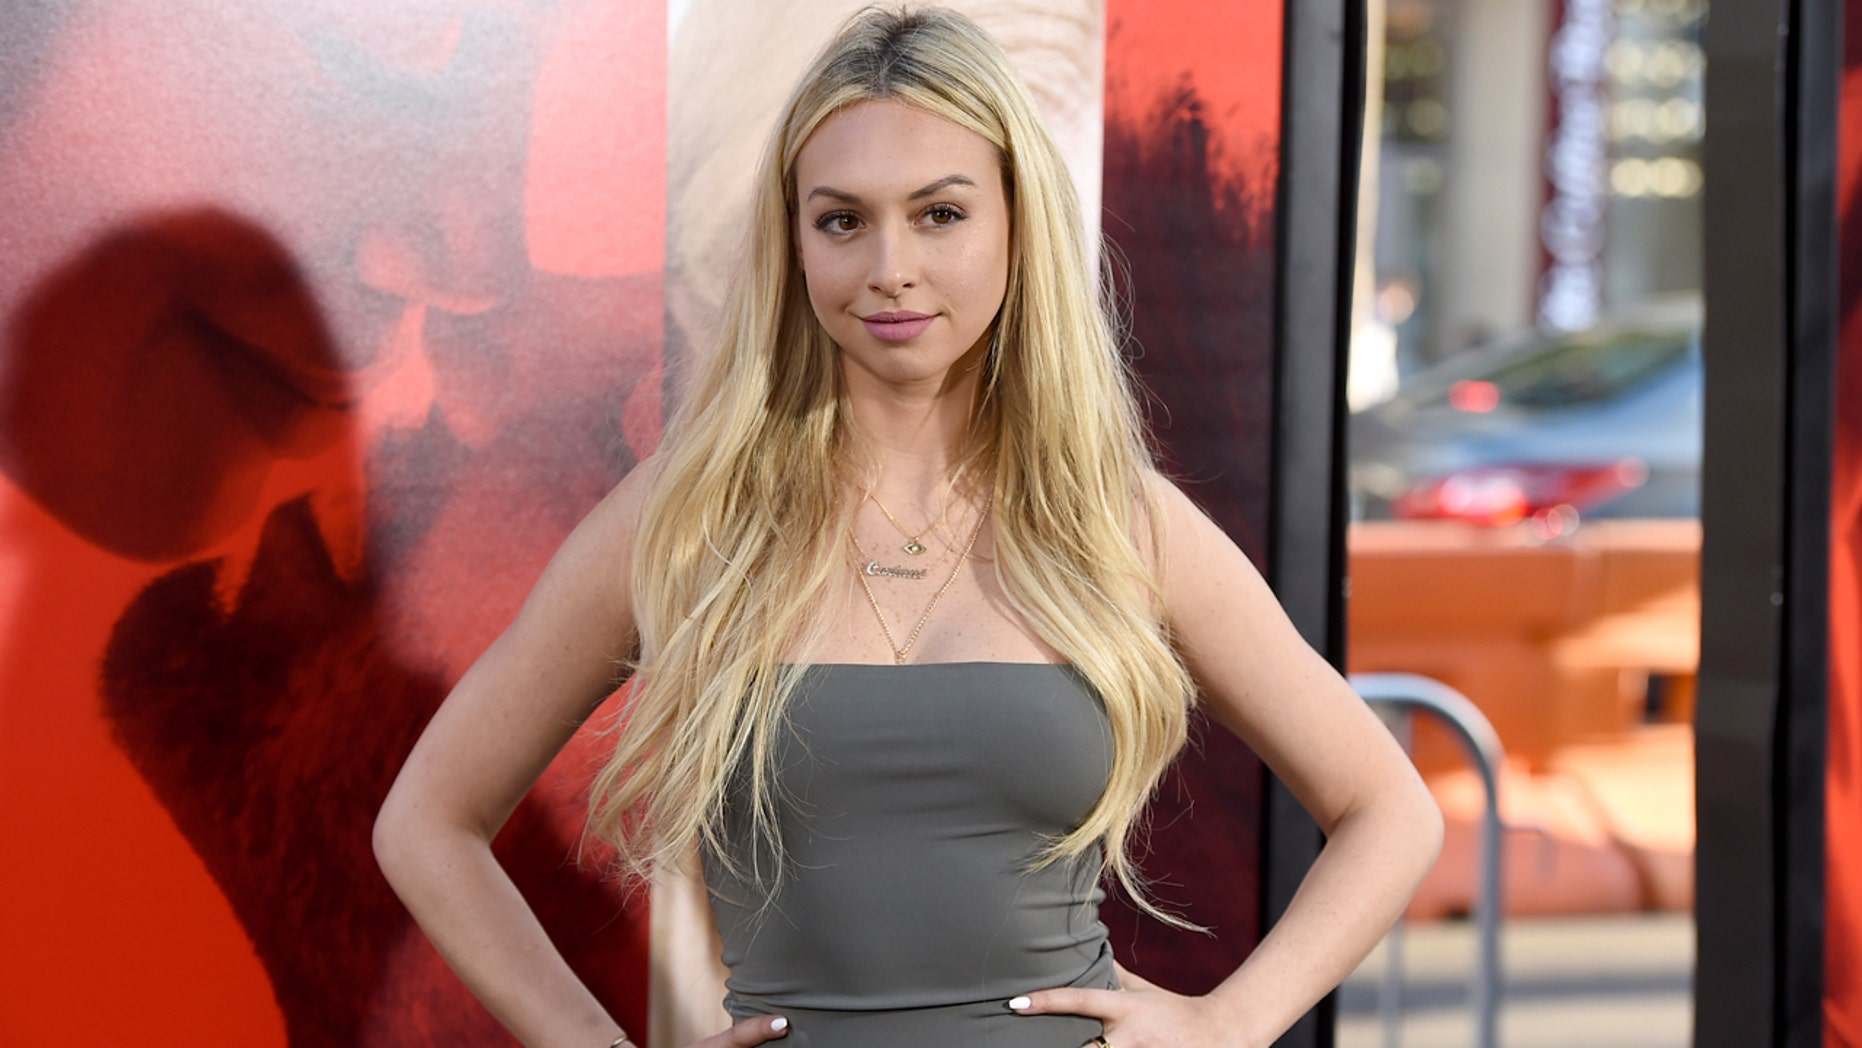 "FILE - In this Tuesday, April 18, 2017, file photo, Corinne Olympios arrives at the Los Angeles premiere of ""Unforgettable"" at the TCL Chinese Theatre. Olympios, a contestant on ABC's ""Bachelor in Paradise,"" said she was a ""victim"" who was seeking therapy for what she called the physical and emotional trauma she experienced during the taping of one of the show's episodes on June 4. Warner Bros., the show's producer, said Tuesday, June 20, that it had reviewed videotape from the show and found that no cast member misbehaved or was in jeopardy on the set. (Photo by Jordan Strauss/Invision/AP, File)"